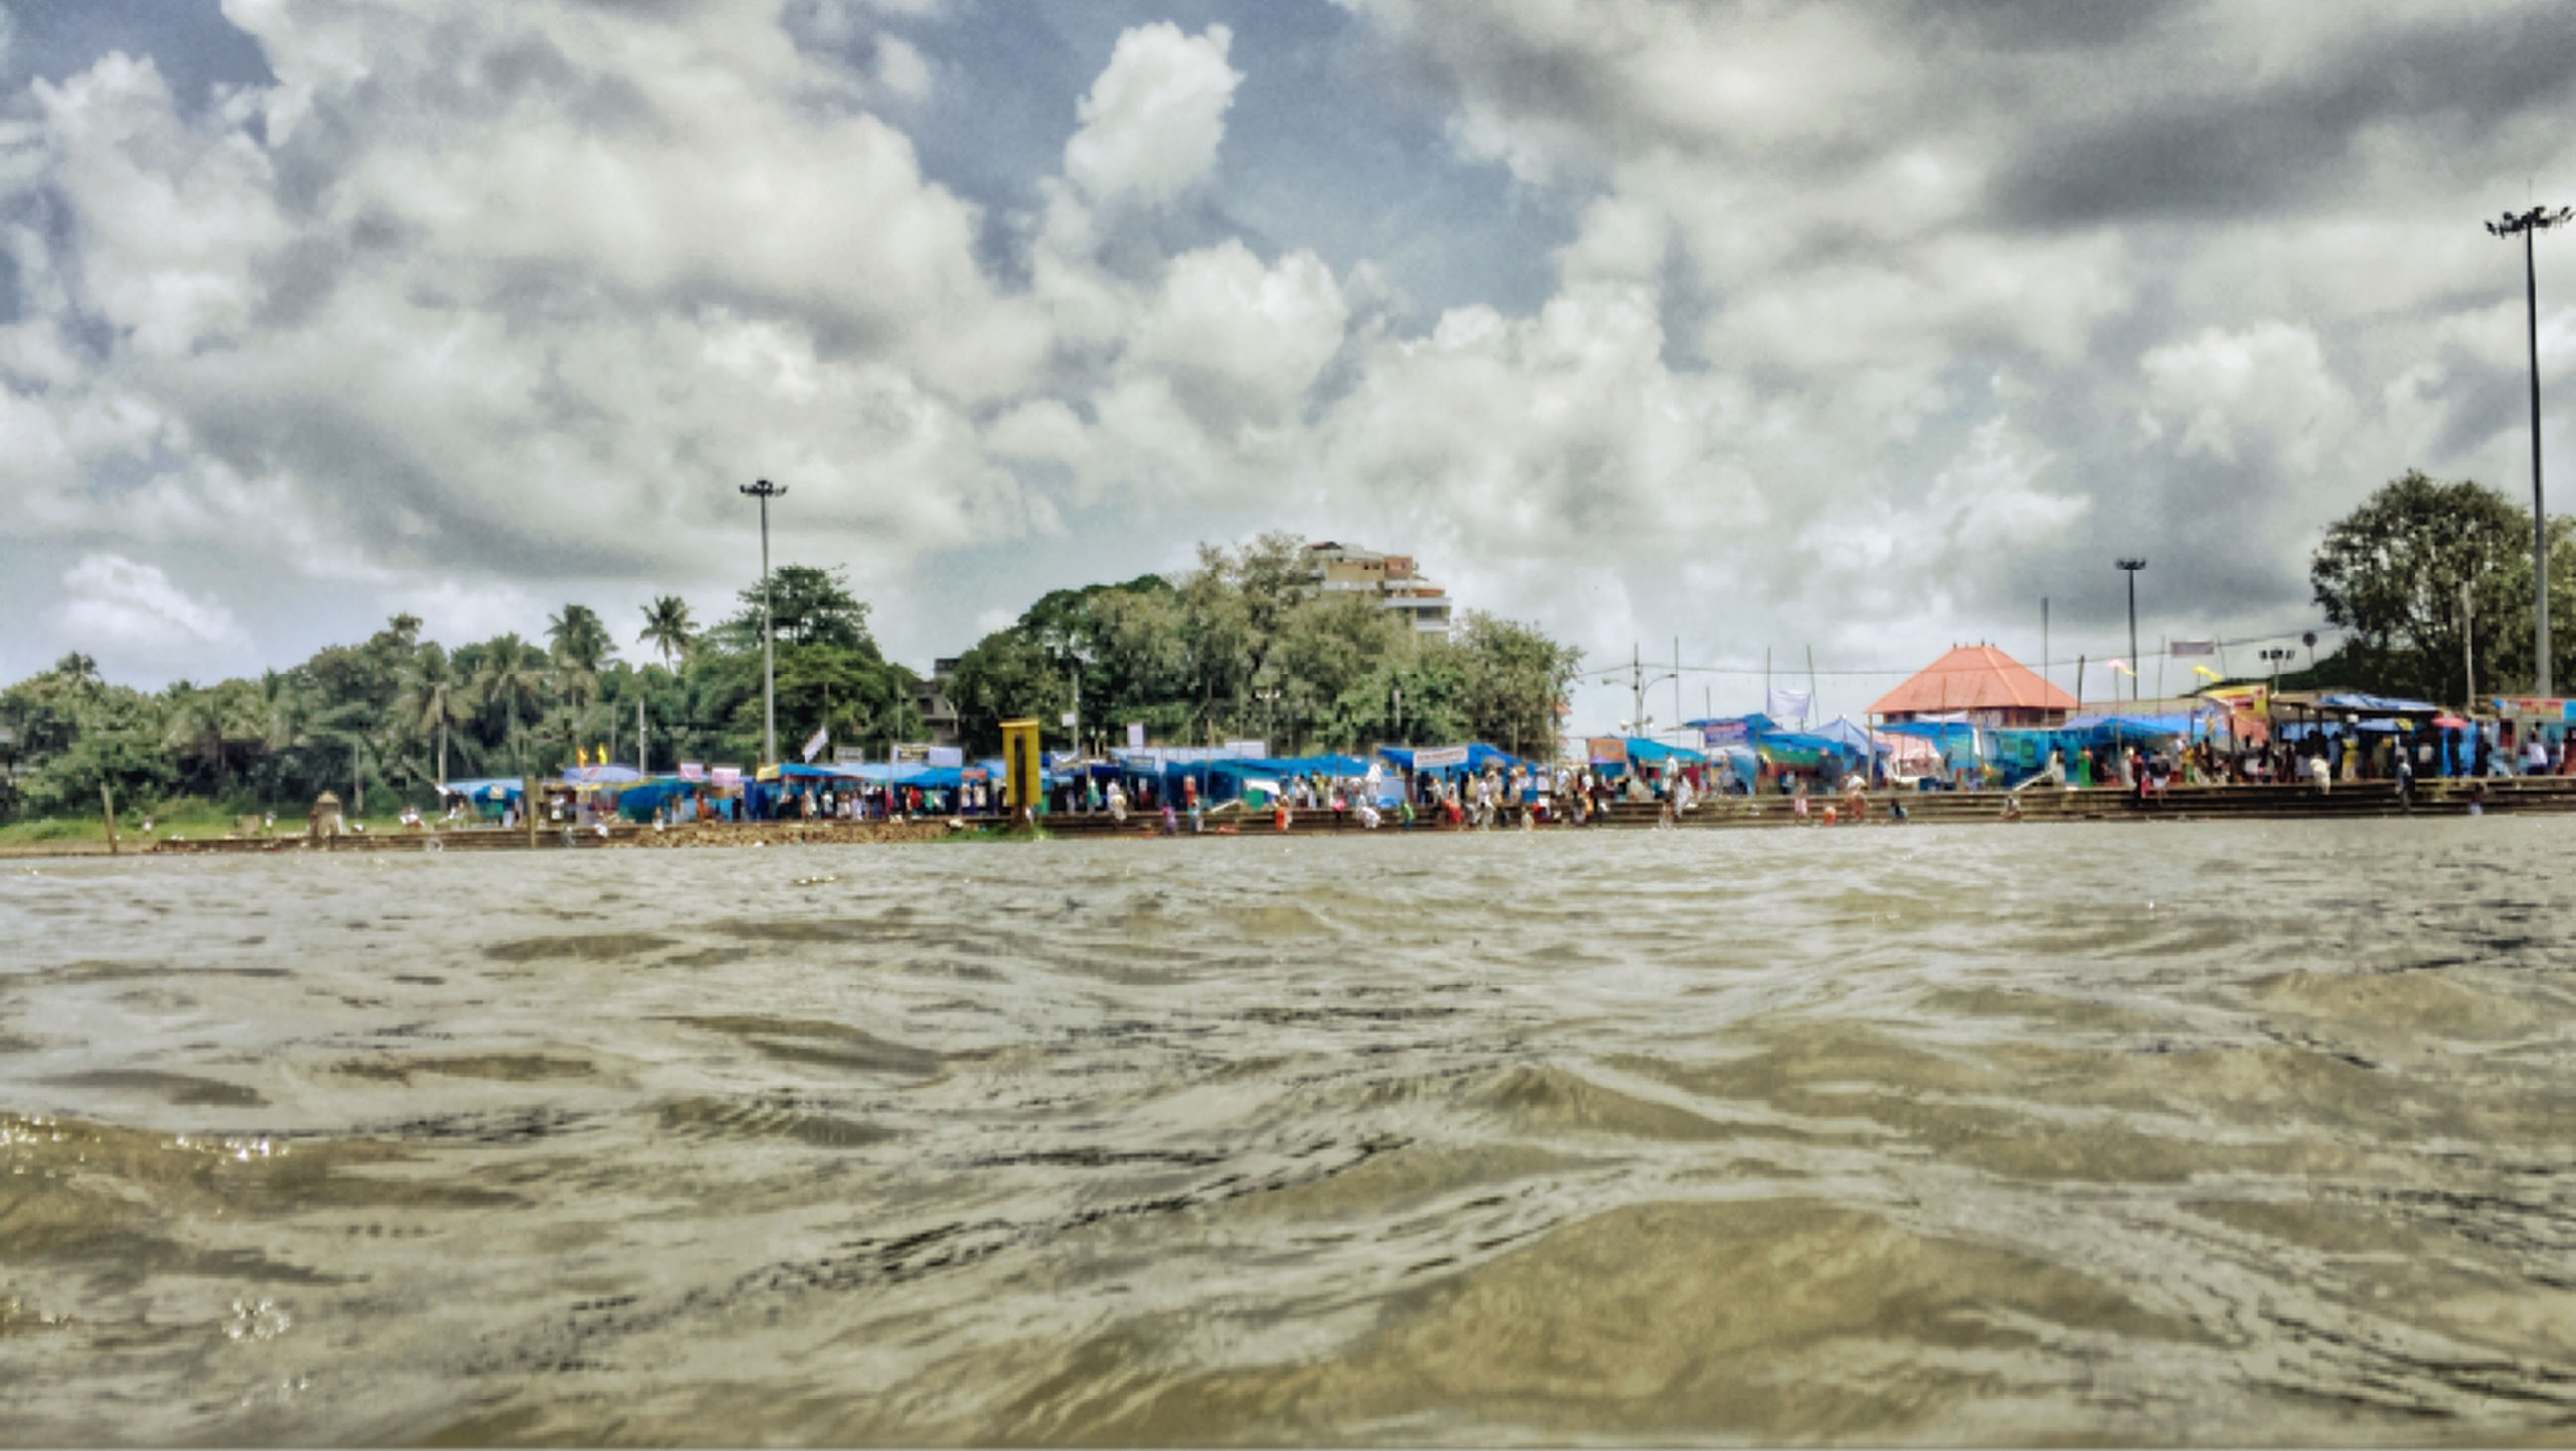 water, sky, cloud - sky, nautical vessel, sea, cloudy, boat, waterfront, transportation, mode of transport, cloud, beach, moored, nature, tranquil scene, tranquility, scenics, rippled, beauty in nature, day